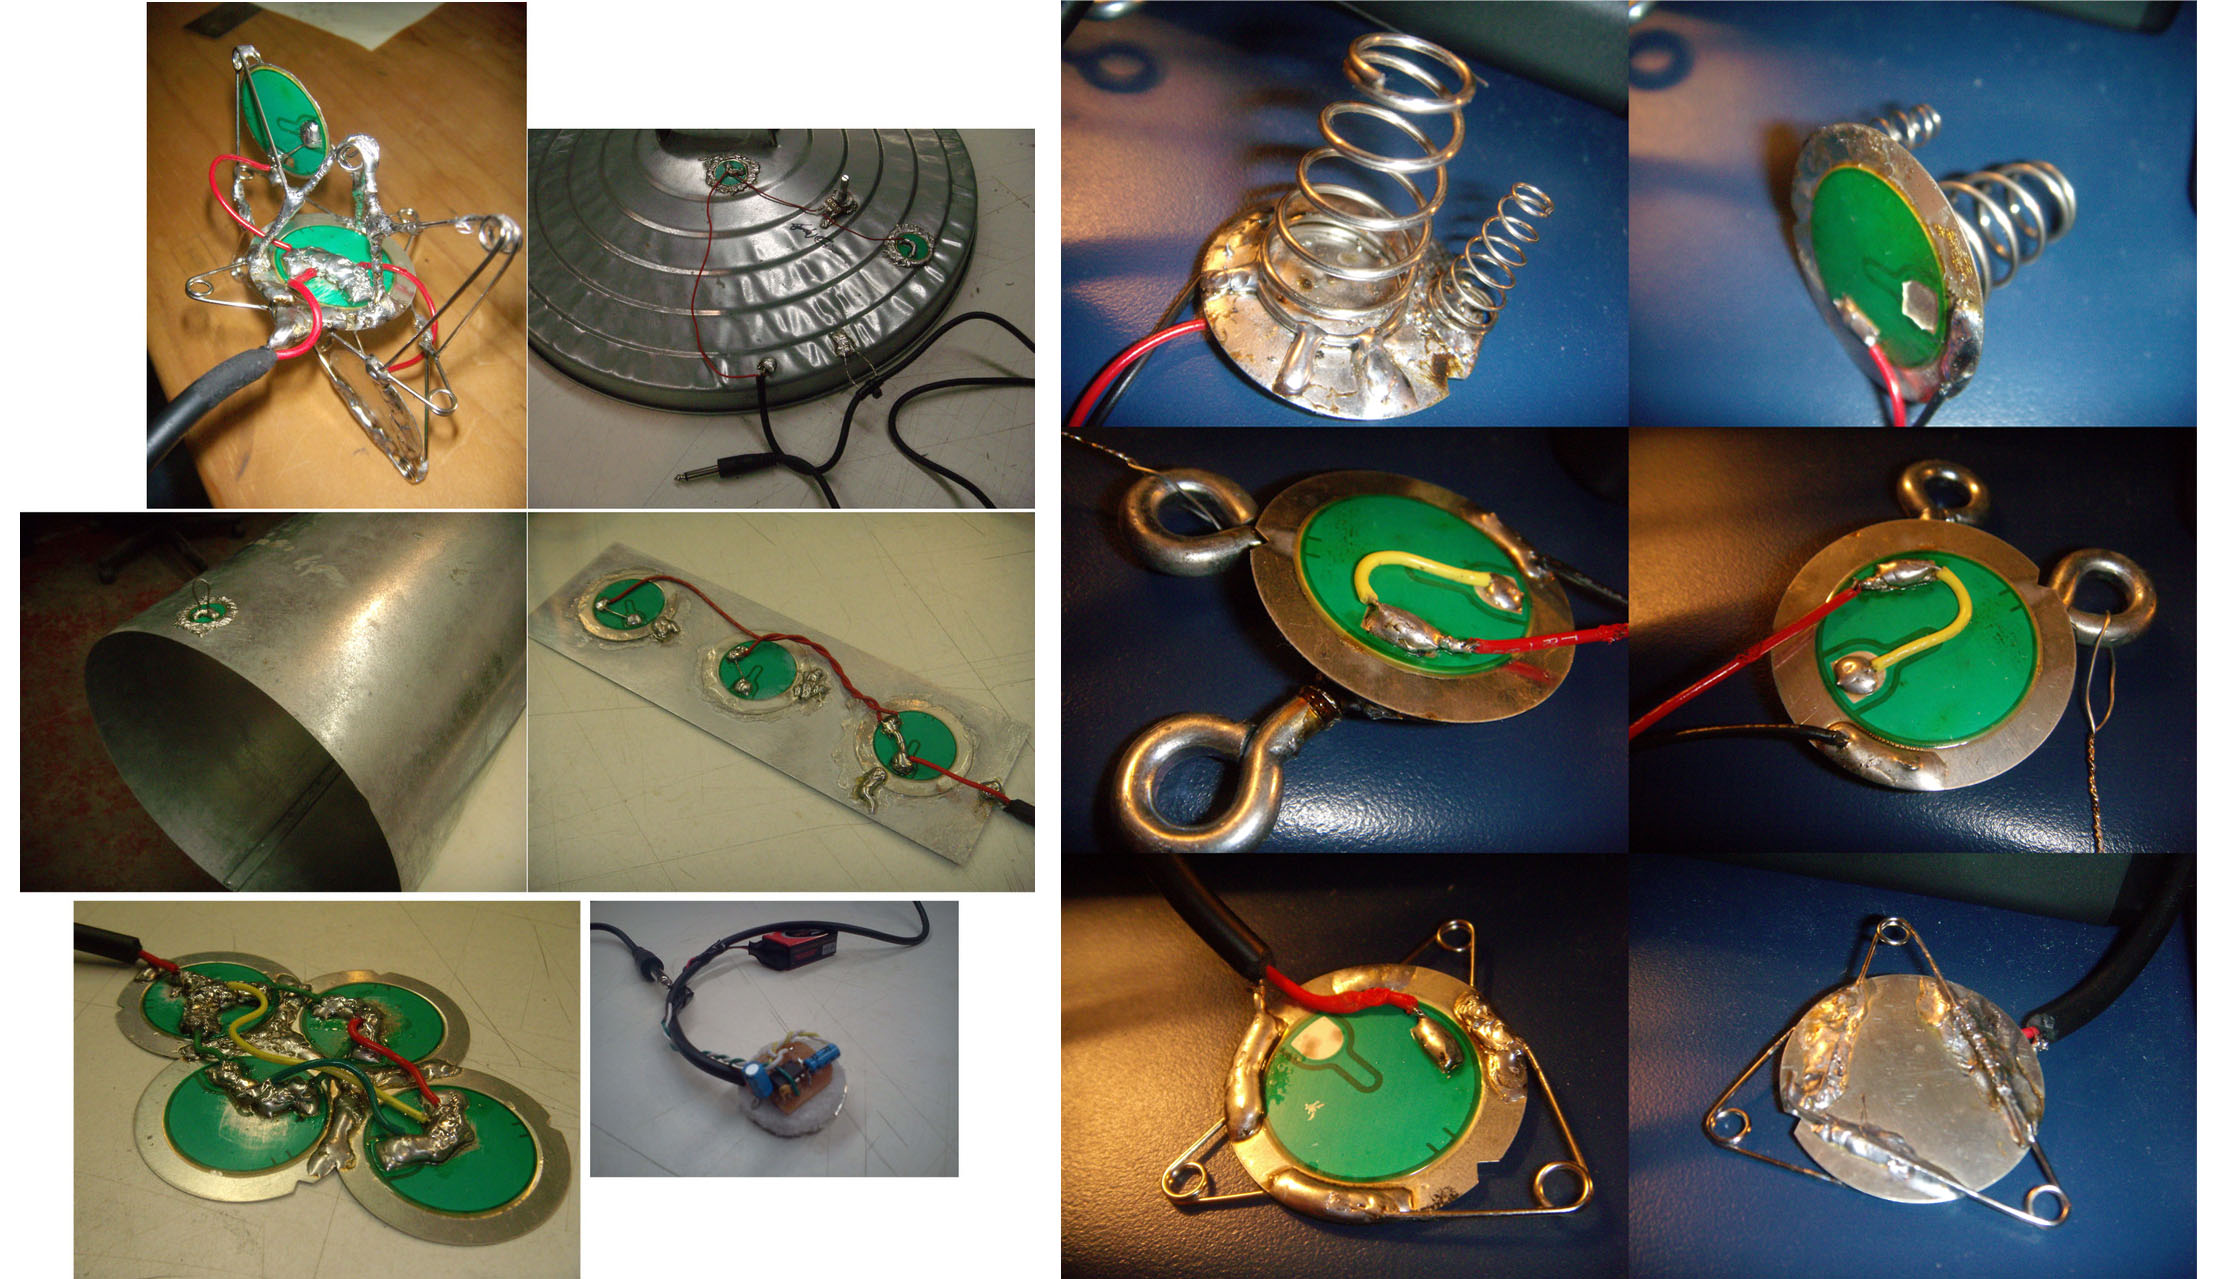 piezo objects